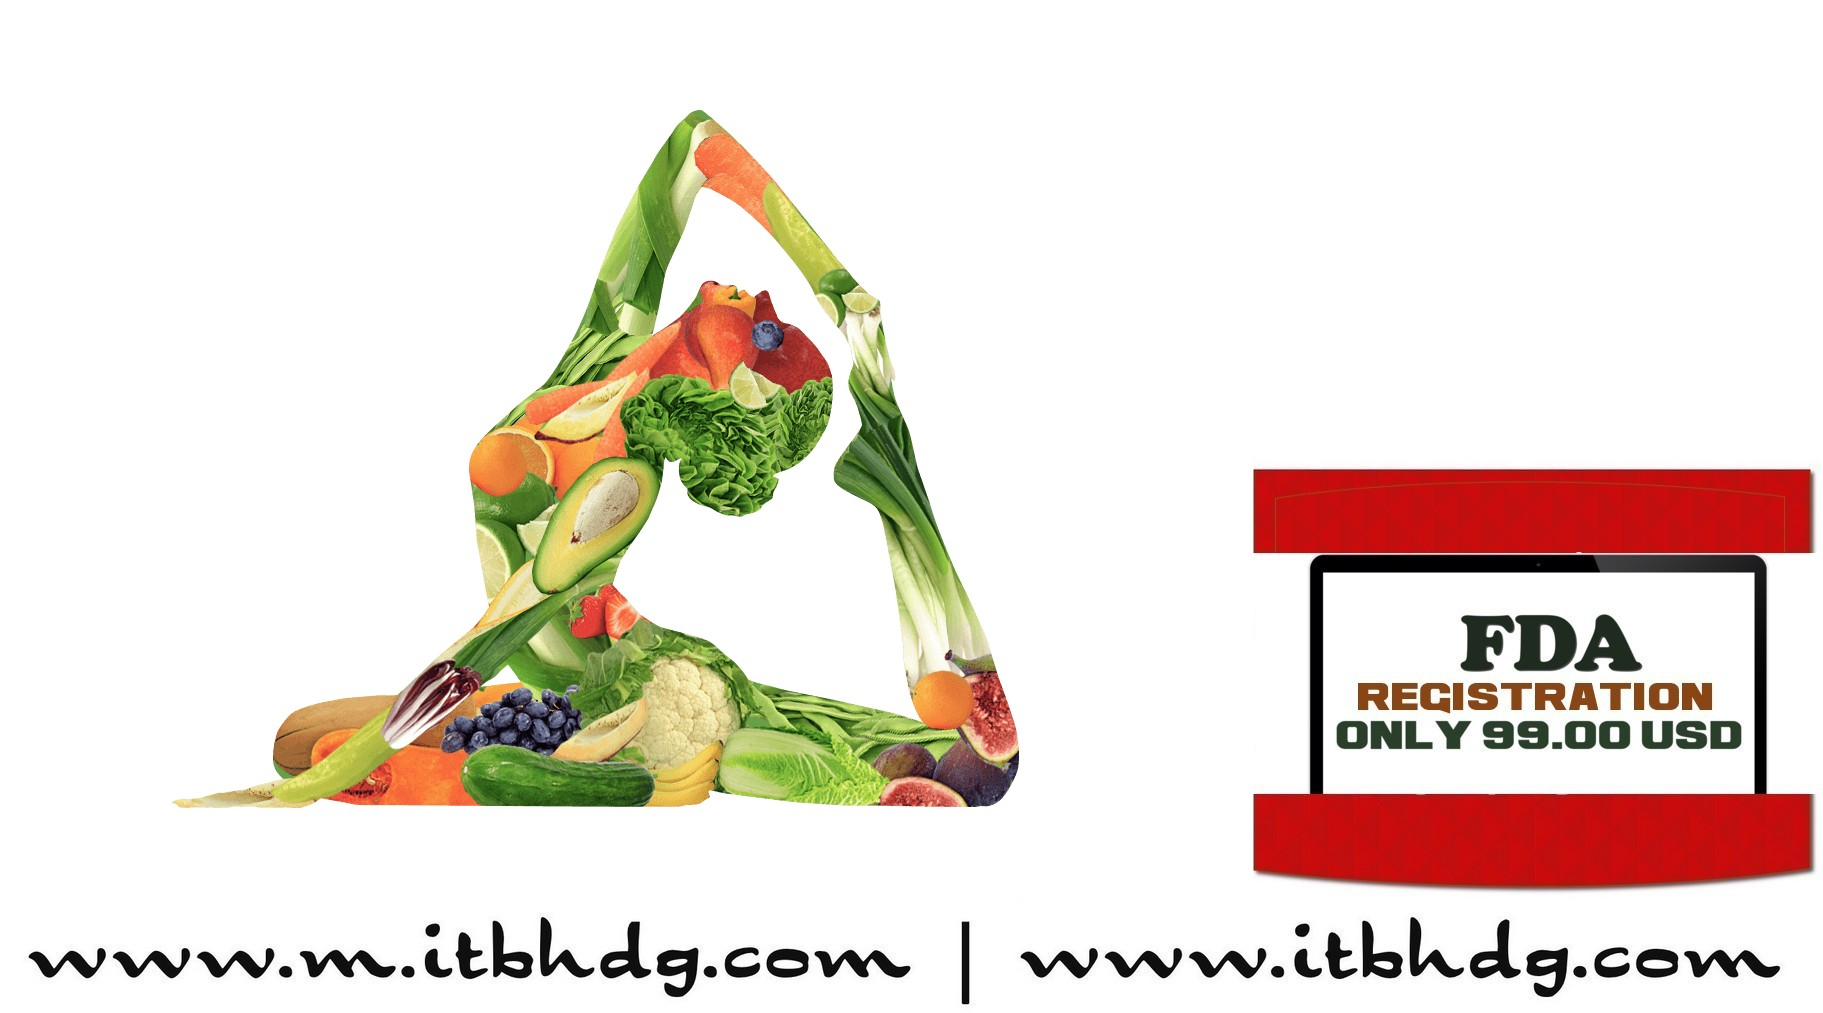 FDA Registration of your Foods Company | www.m.itbhdg.com | www.itbhdg.com